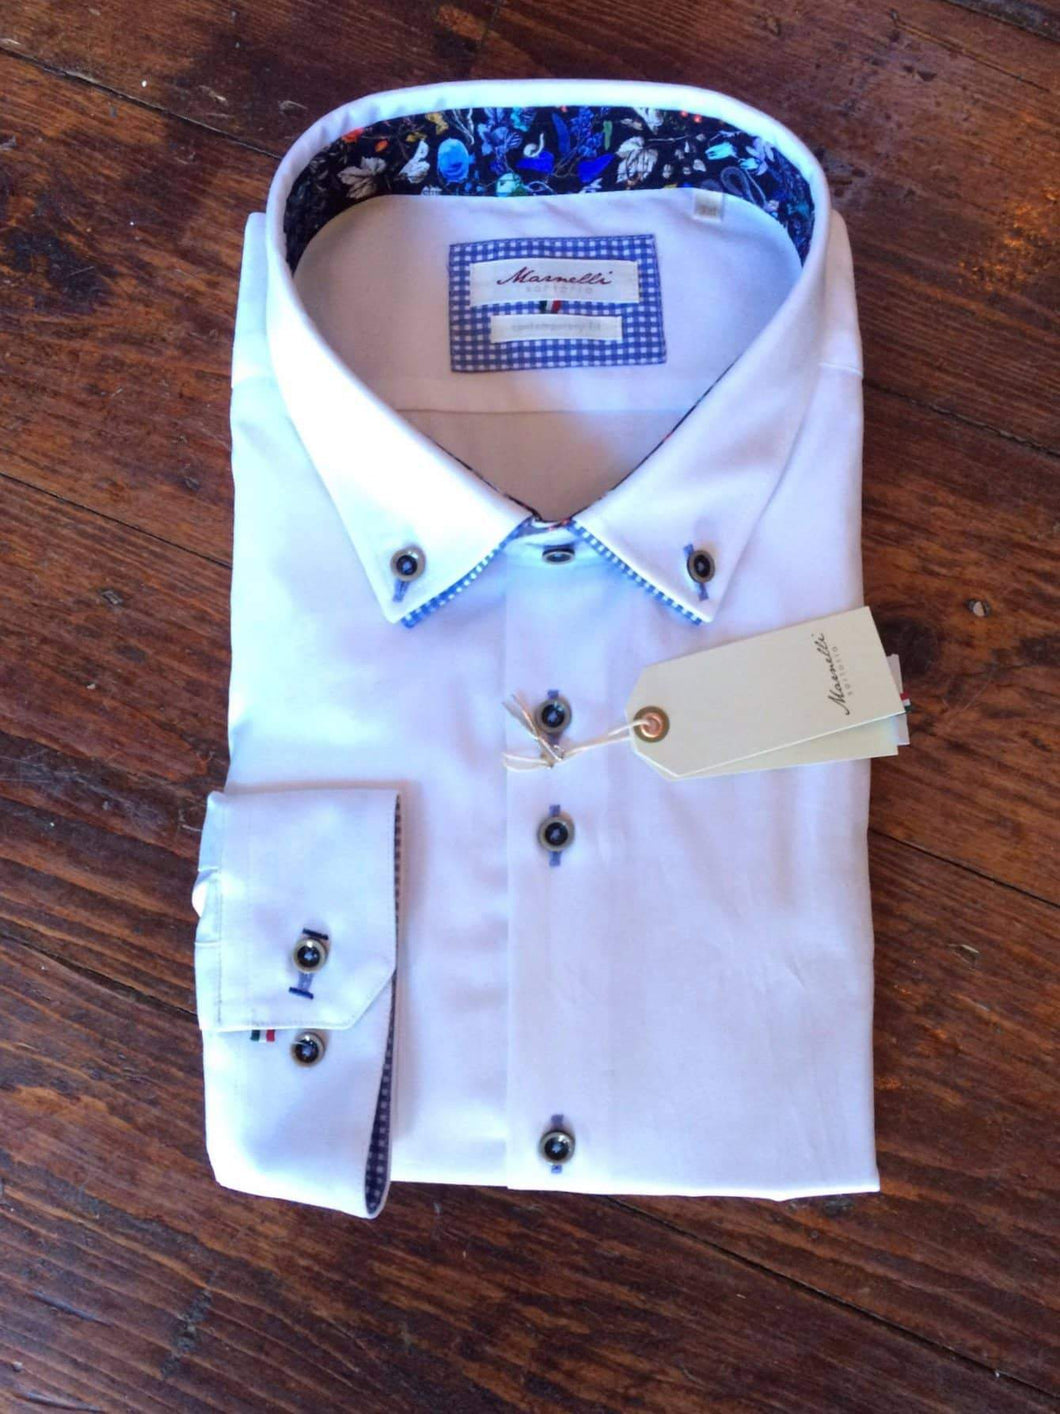 Marnelli White Cotton Shirt With Blue Check Button Down Collar Contrast S